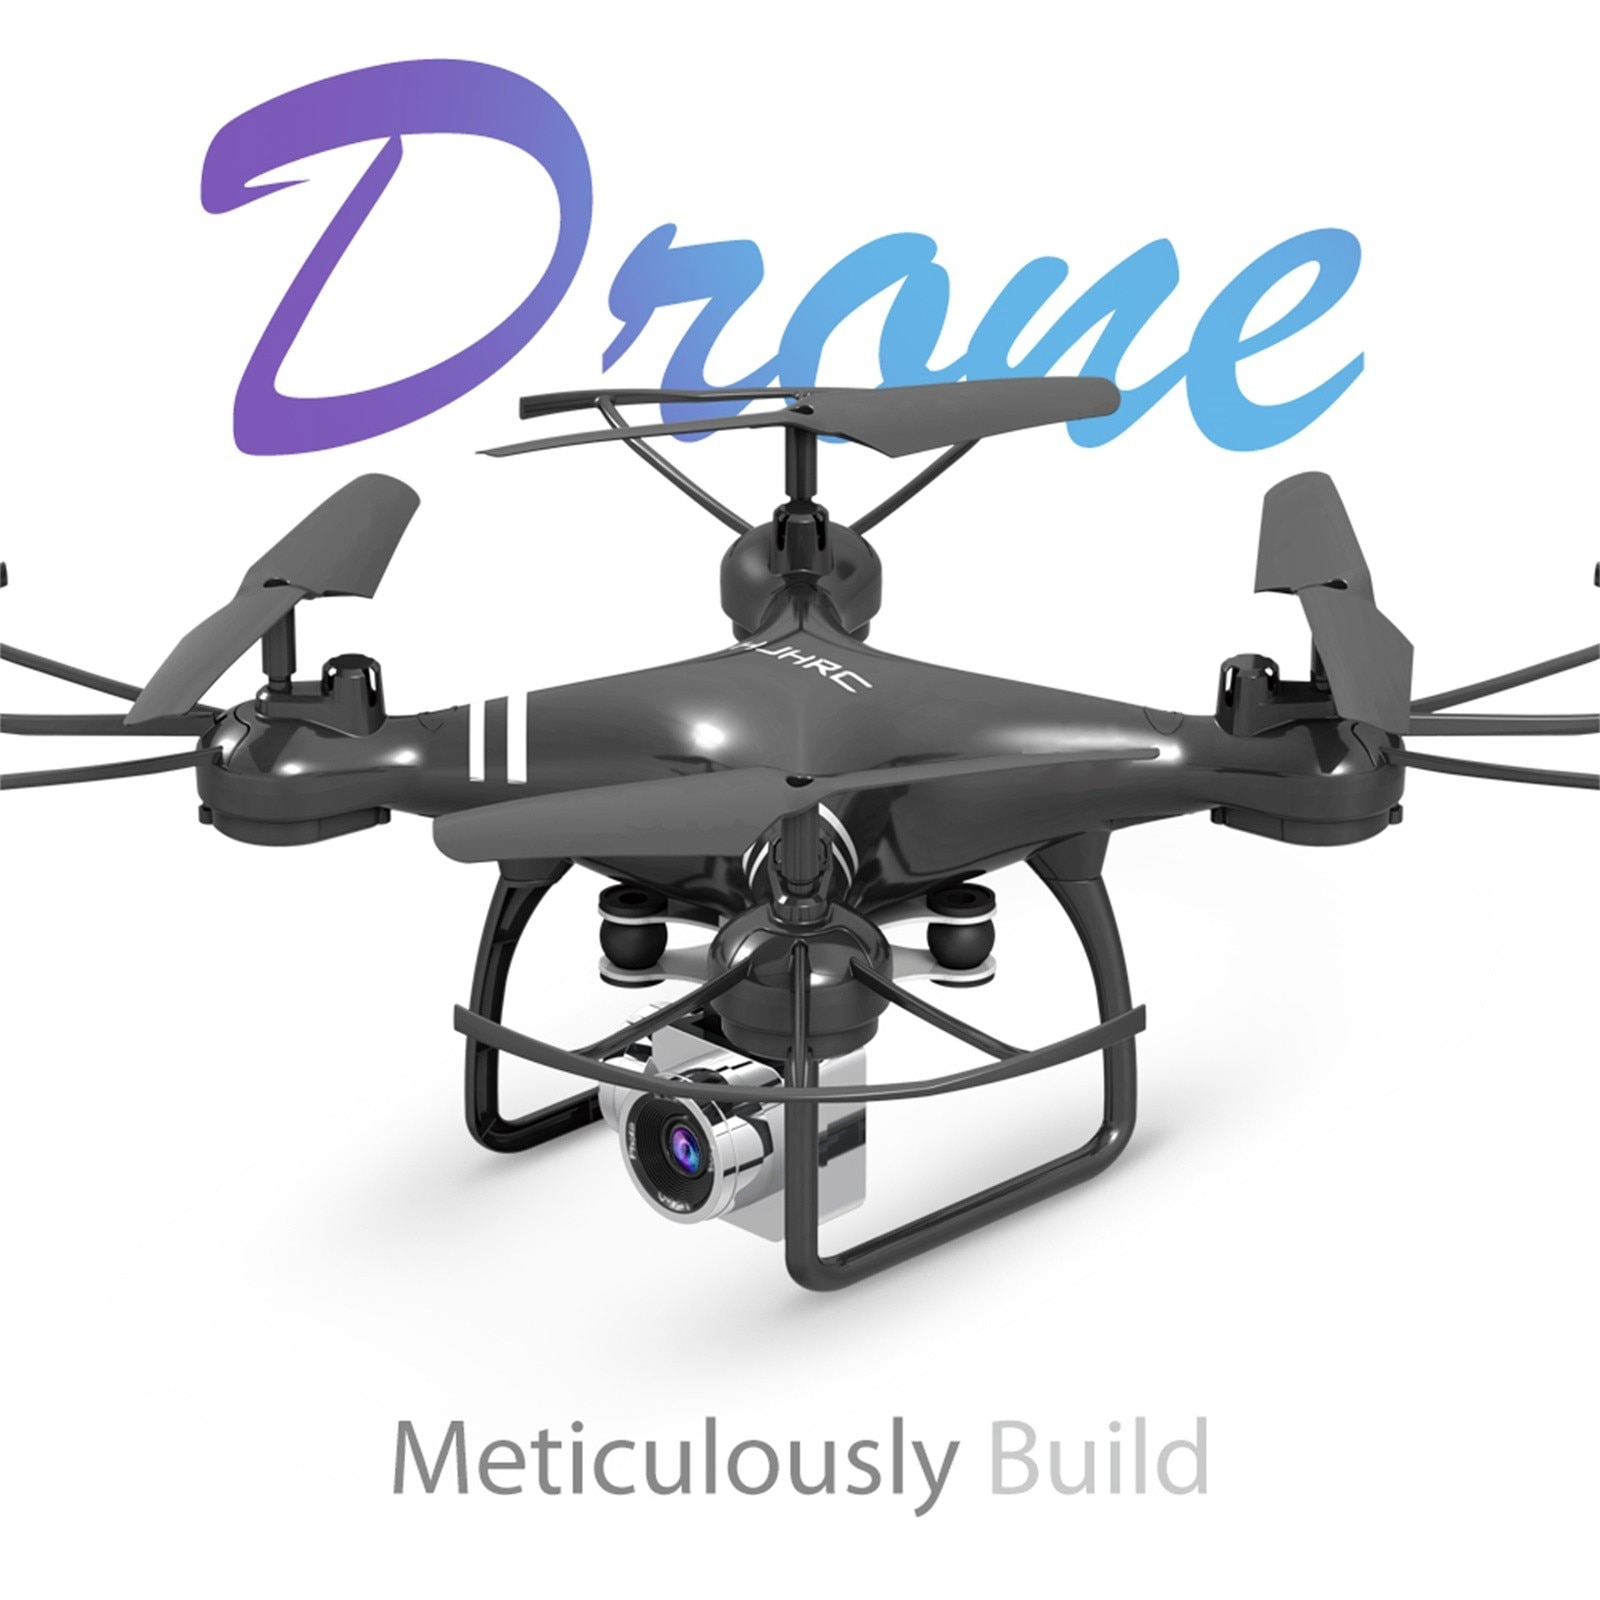 H88b4df497fe94e8099bba4f087dab206c - Hjhrc Four-axis Aerial Photography Aircraft Drone With Camera Hd 4k Wifi Fpv Foldable Drone Height Holding Headless Quadcopter